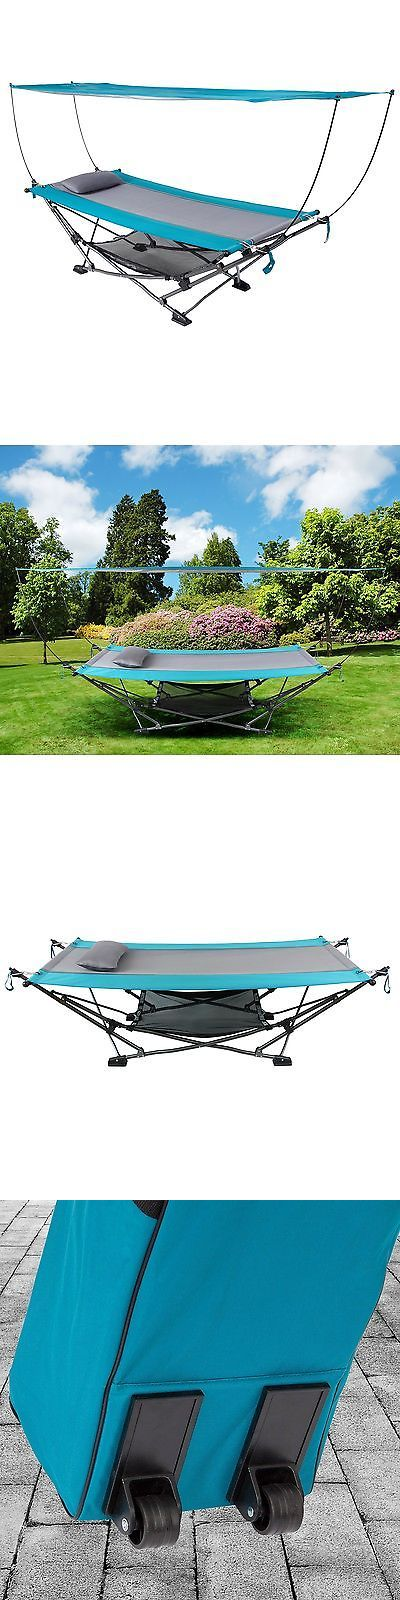 Hammocks 20719: Folding Hammock With Removable Canopy -> BUY IT NOW ONLY: $86.32 on eBay!